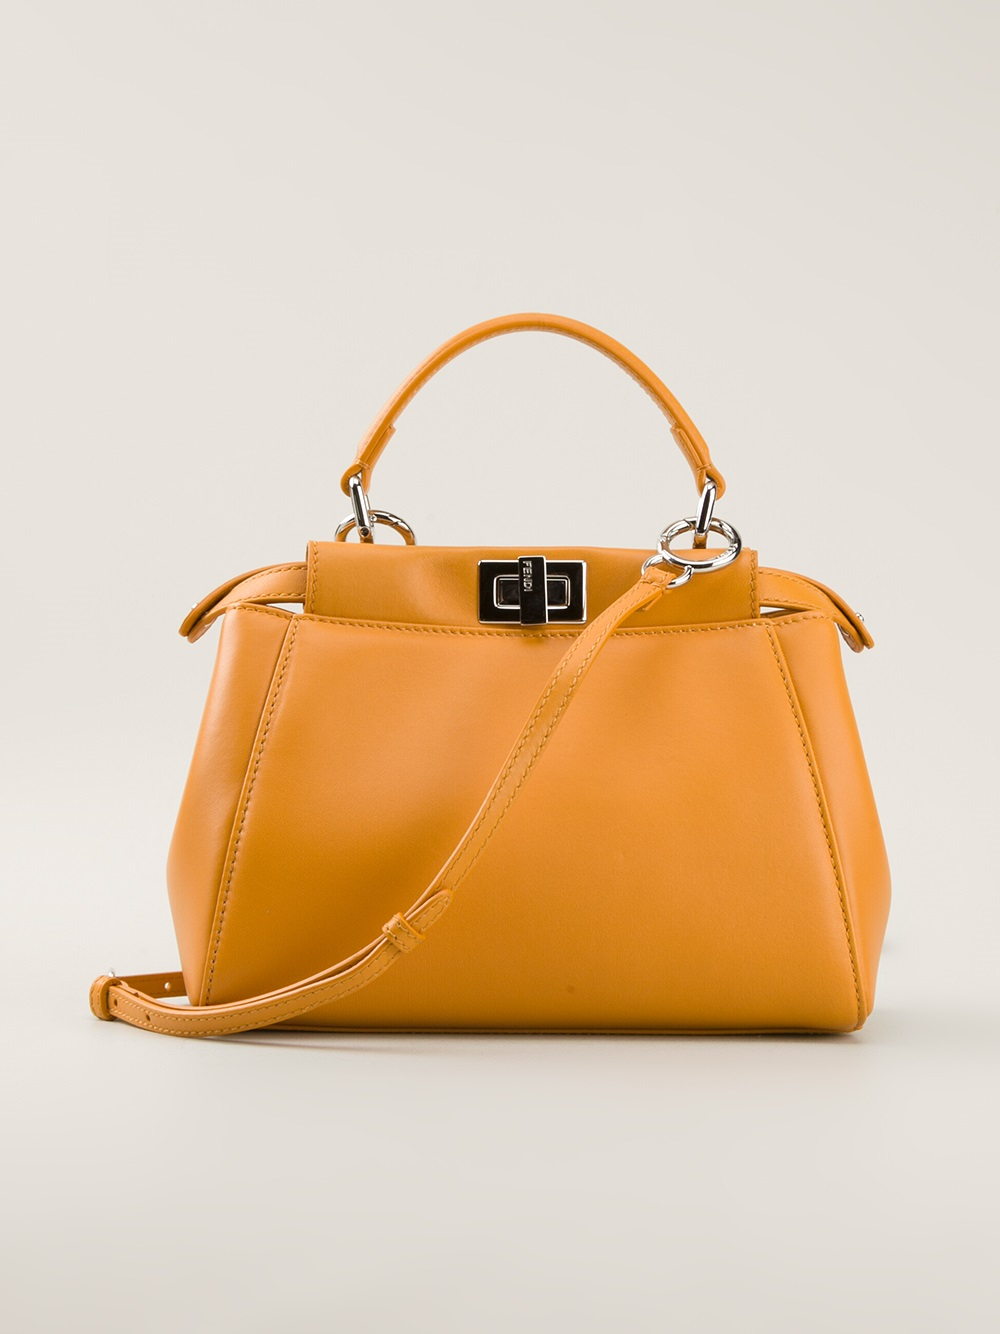 Fendi Peekaboo Small